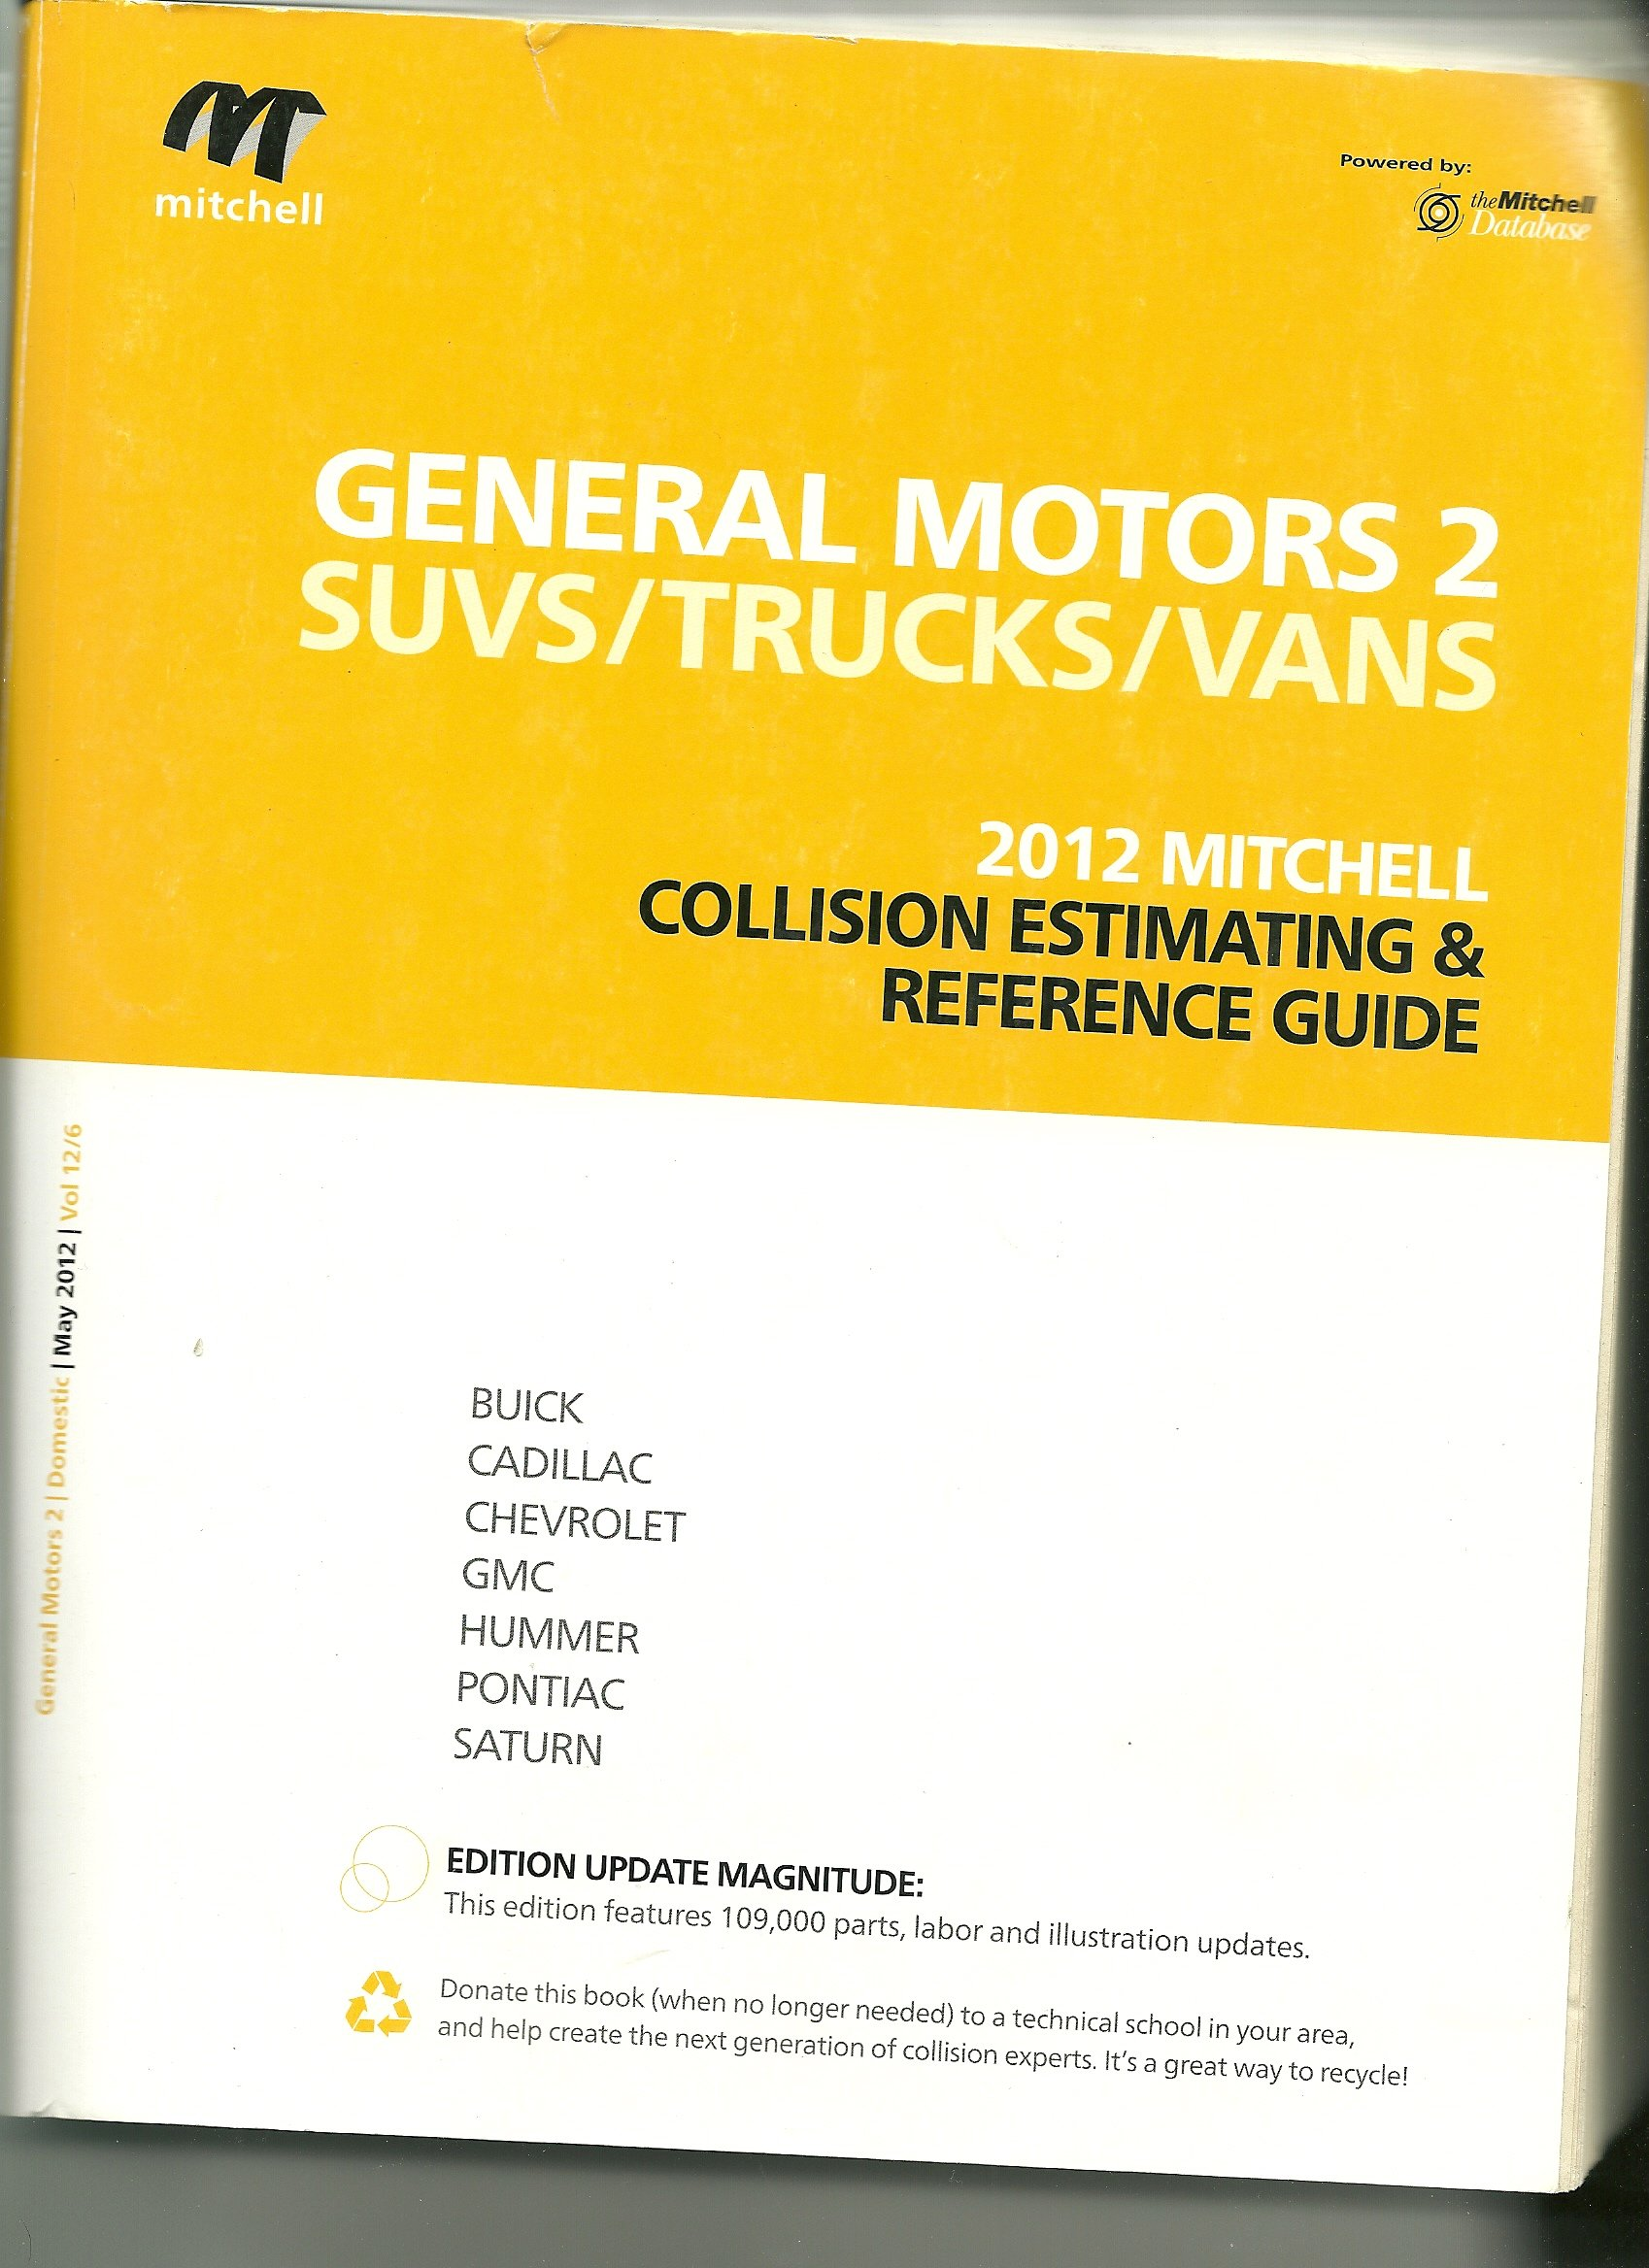 General Motors 1 Passenger Cars 2012 Mitchell Collision Estimating & Reference  Guide (2012 Mitchell Collision Estimating & Reference Guide, 12/3):  Mitchell: ...